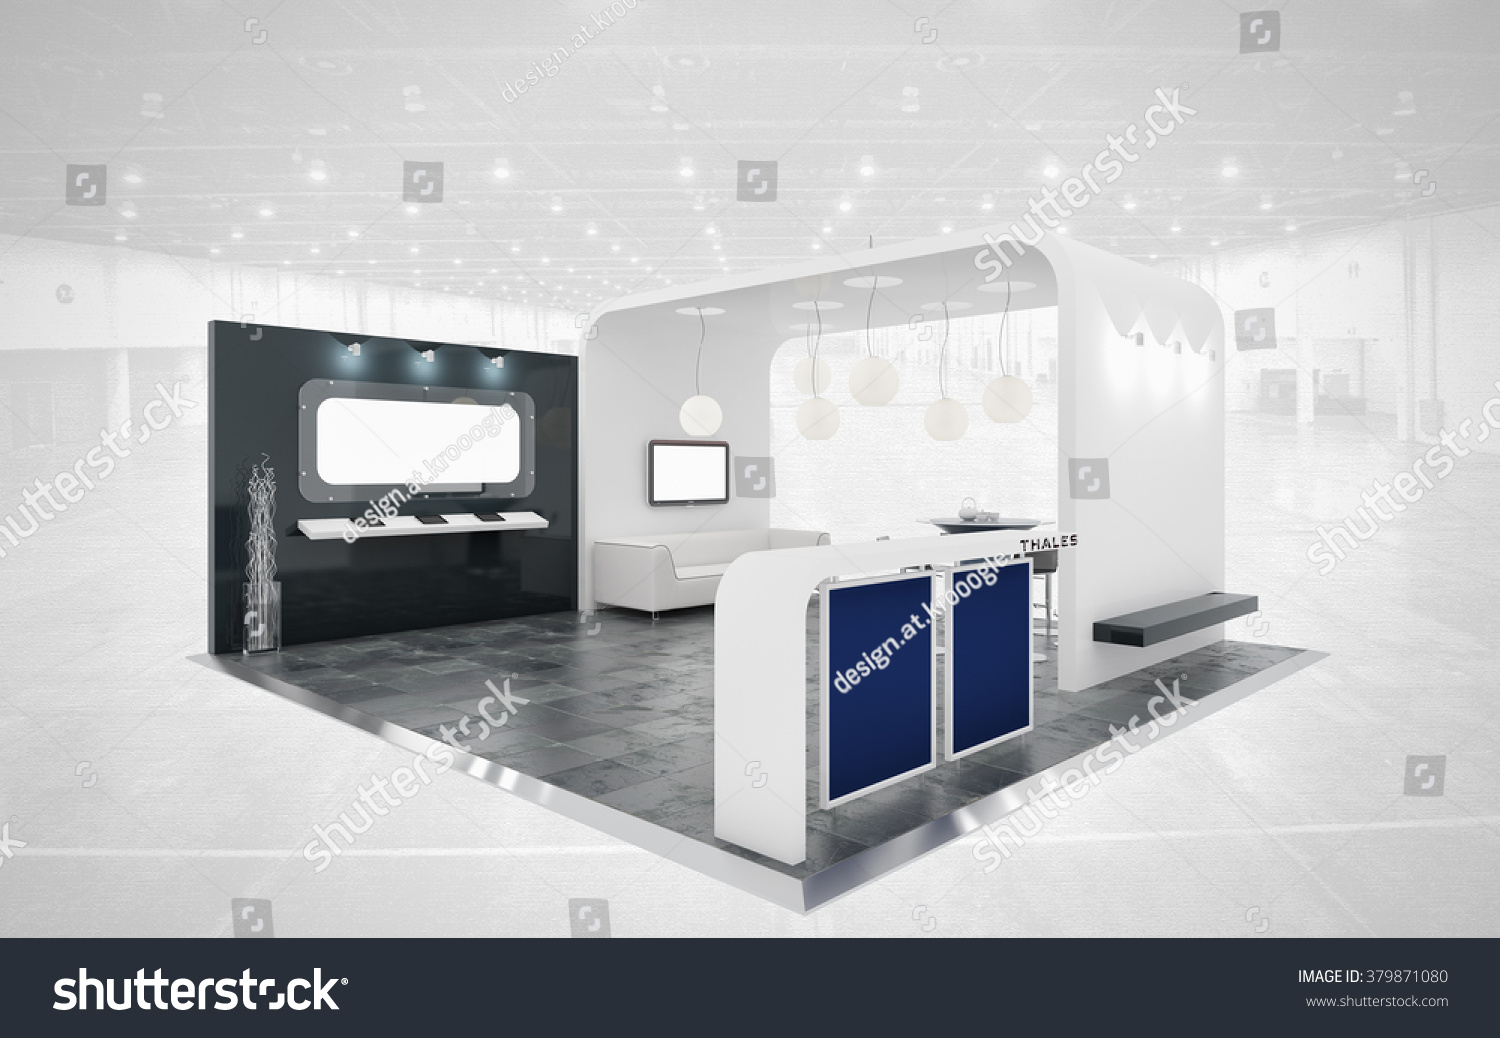 Exhibition Stand White : Black white exhibition stand d rendering stock